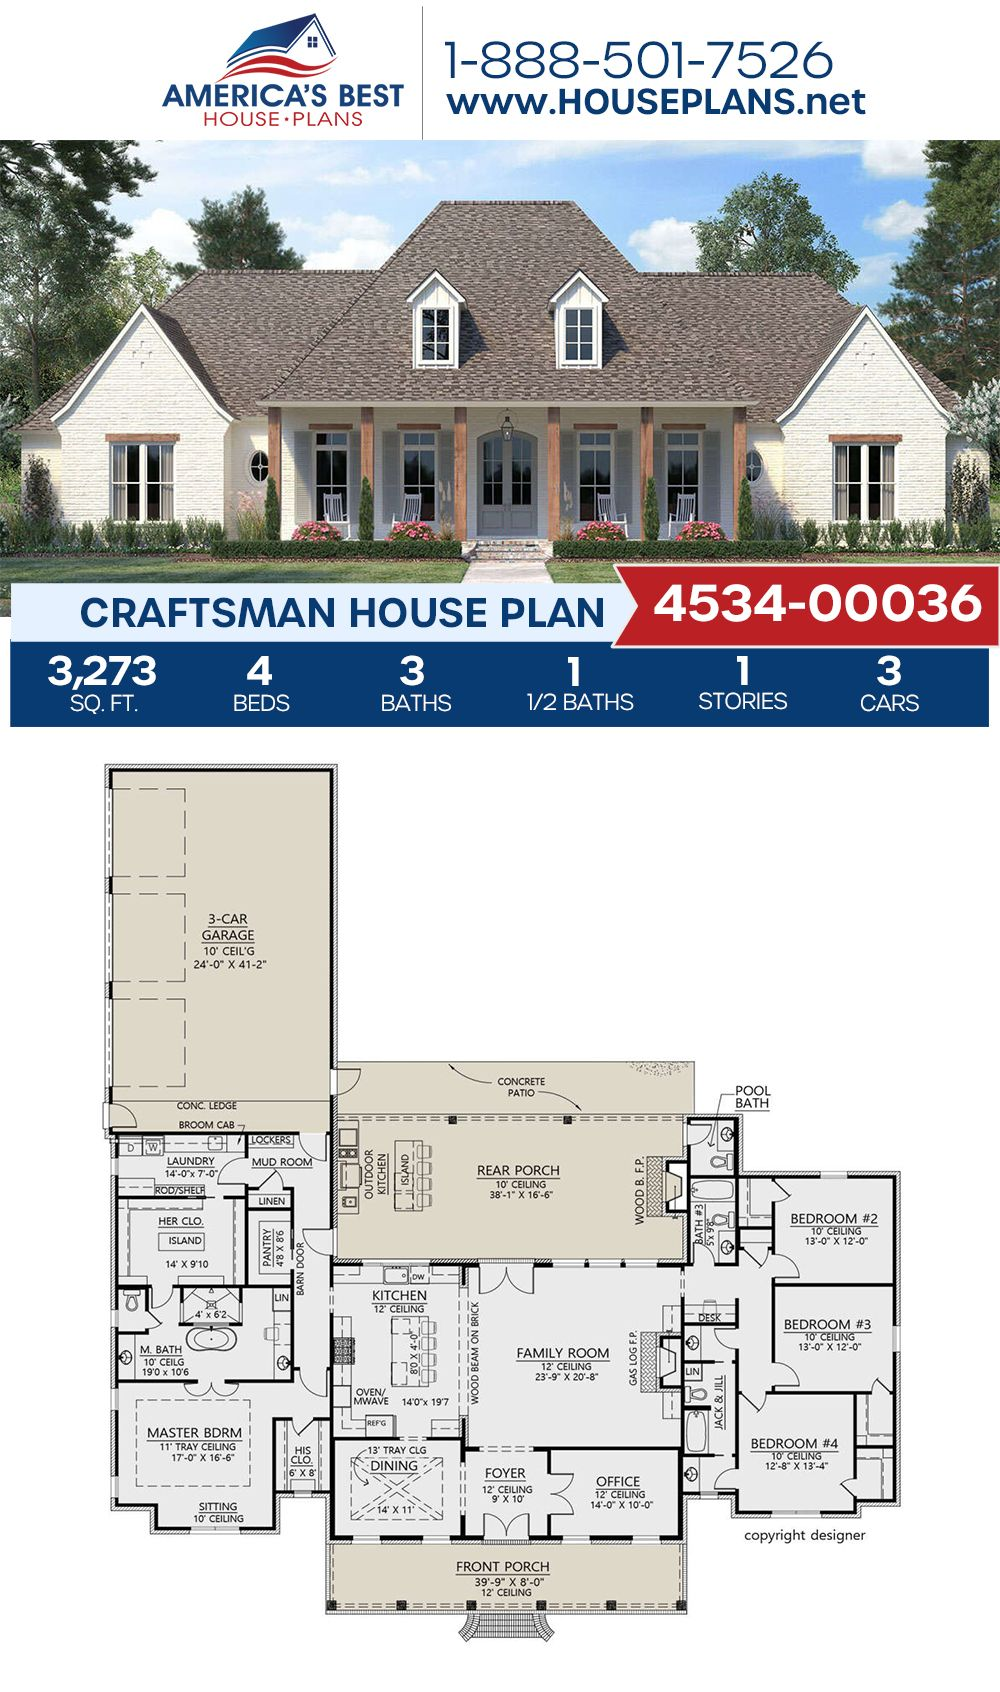 House Plan 4534 00036 Craftsman Plan 3 273 Square Feet 4 Bedrooms 3 5 Bathrooms In 2020 House Plans Farmhouse Craftsman House Plans New House Plans